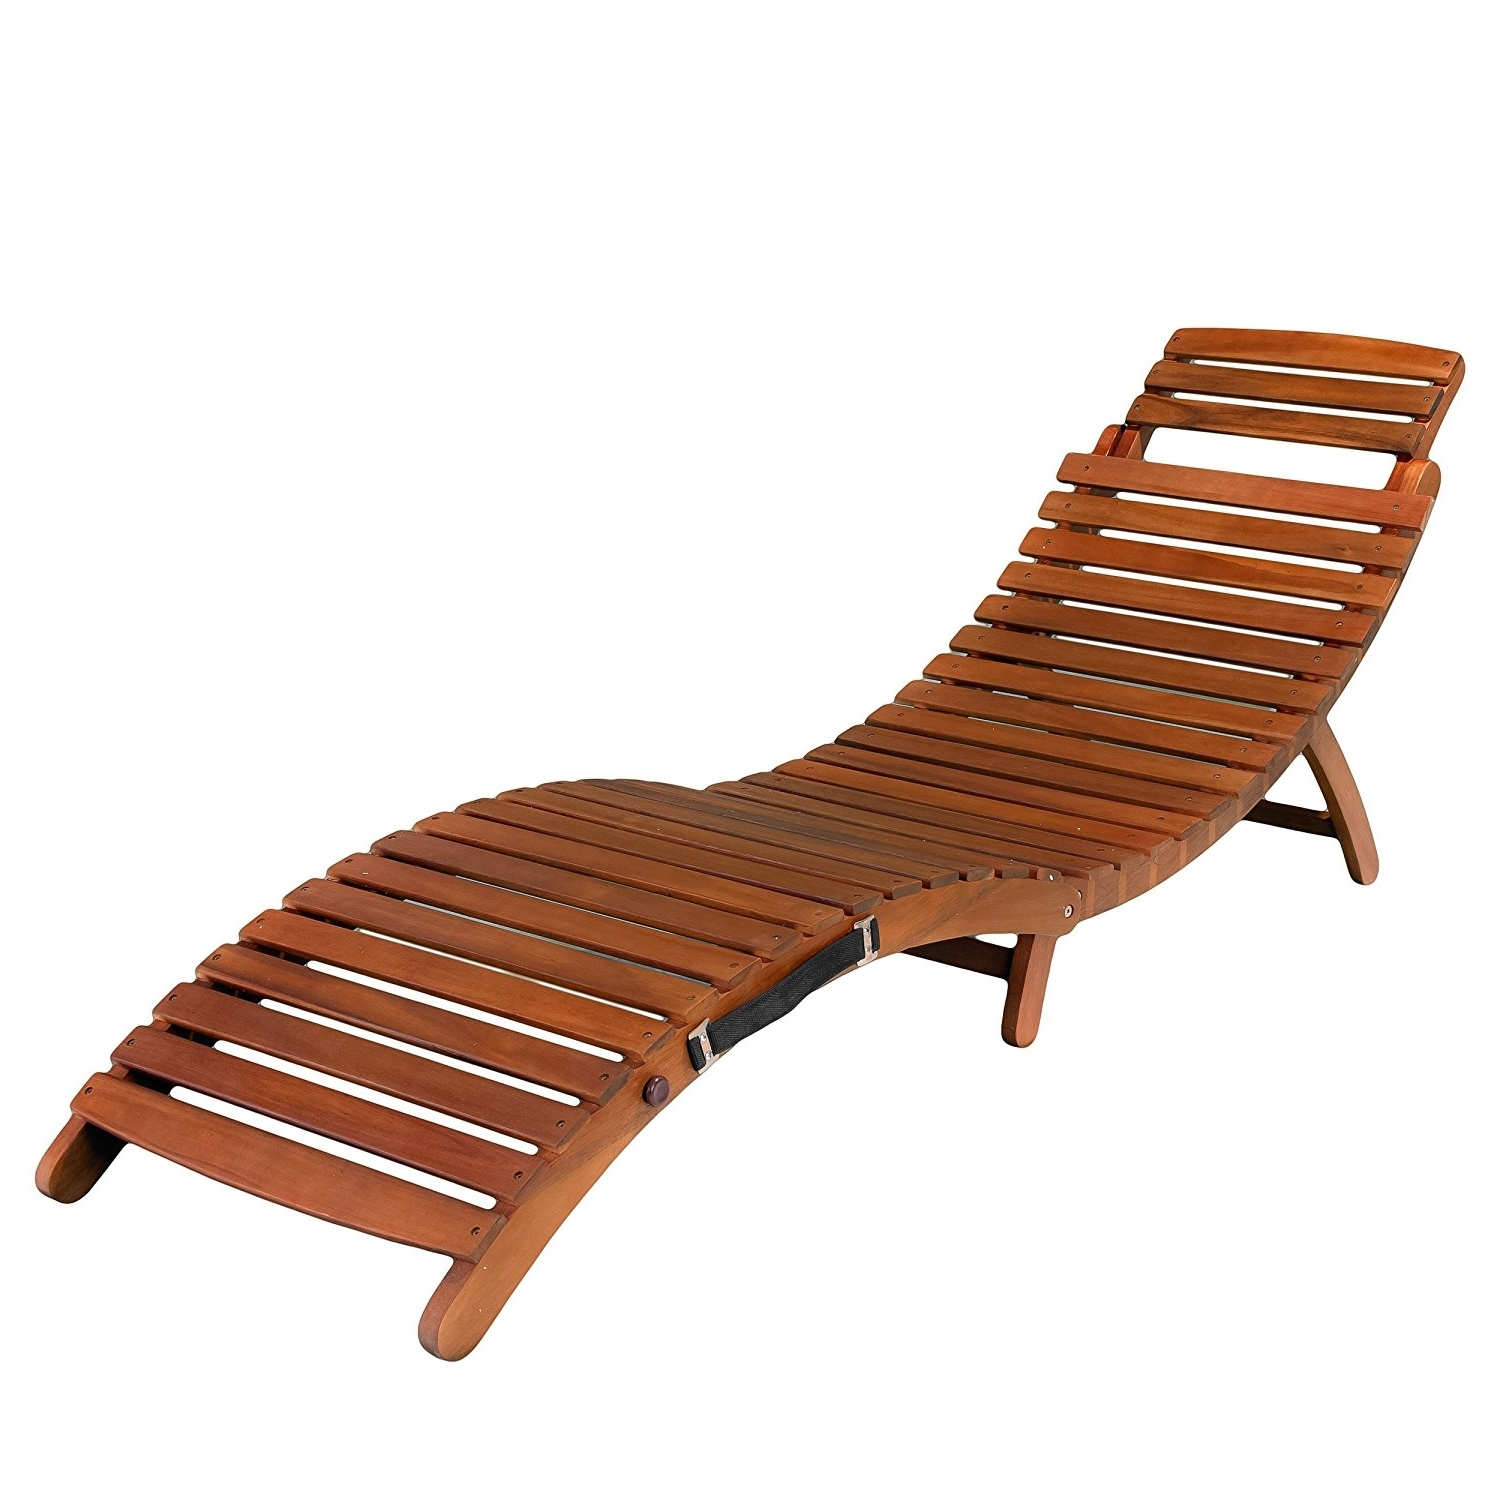 Hardwood Chaise Lounge Chairs With 2018 Amazon: Best Selling Del Rio Wood Outdoor Chaise Lounge (View 8 of 15)